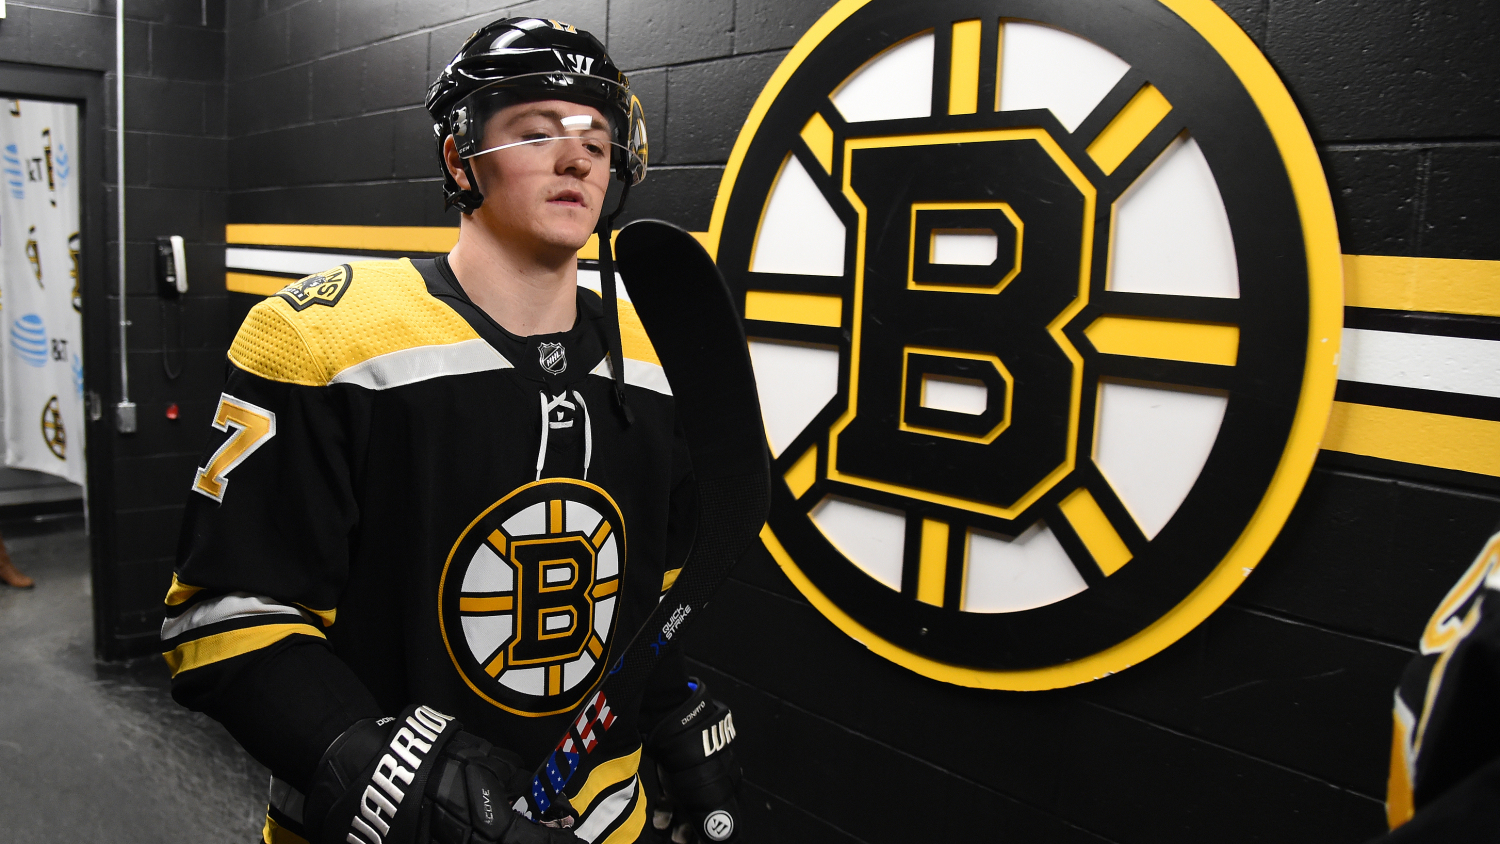 Where The Hell is Ryan Donato?